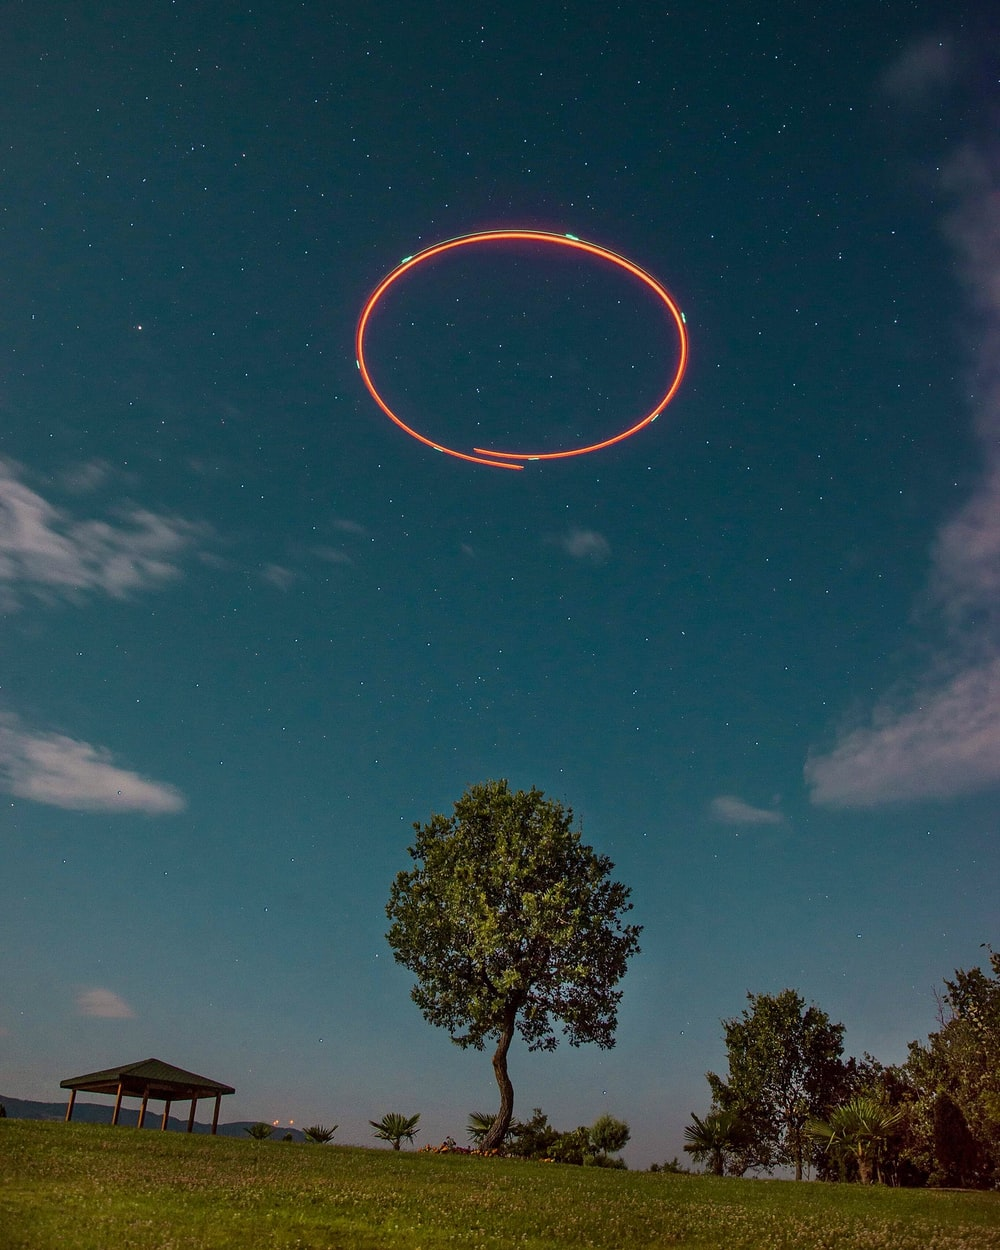 red ring on sky during daytime